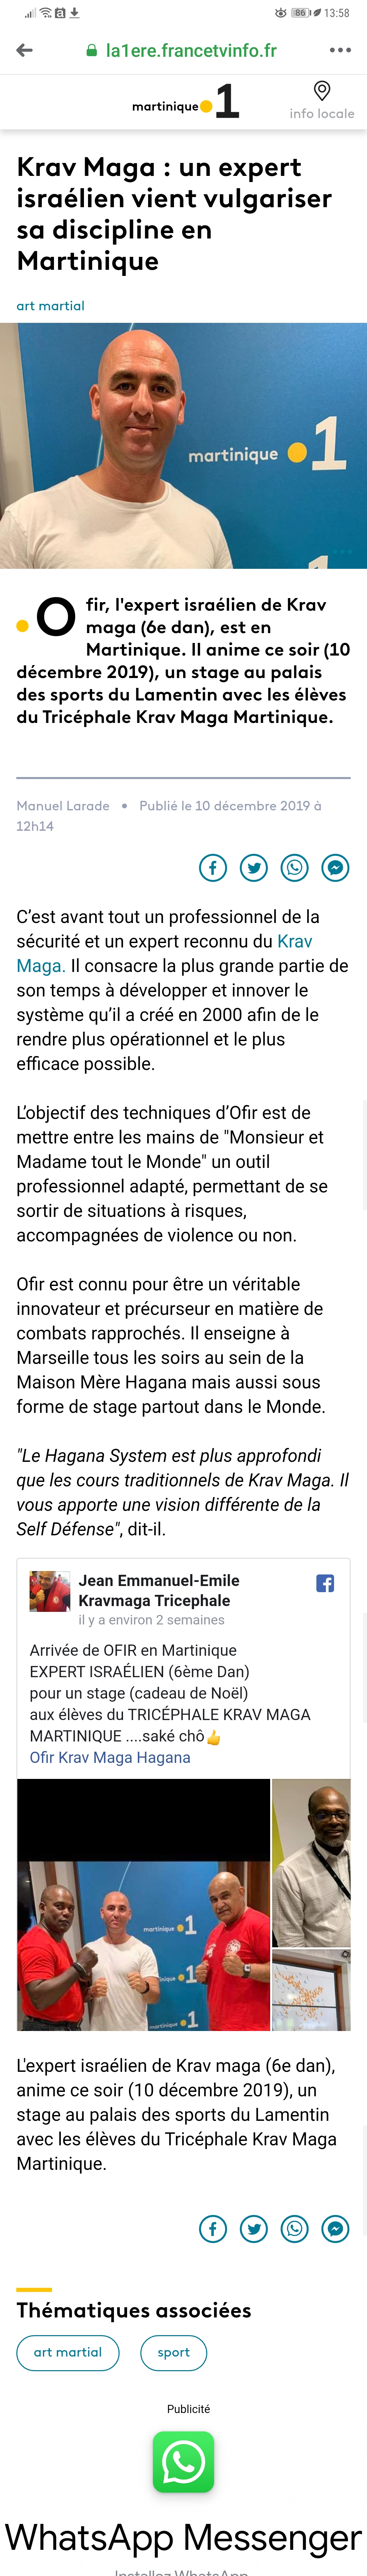 article hagana Martinique 1ere